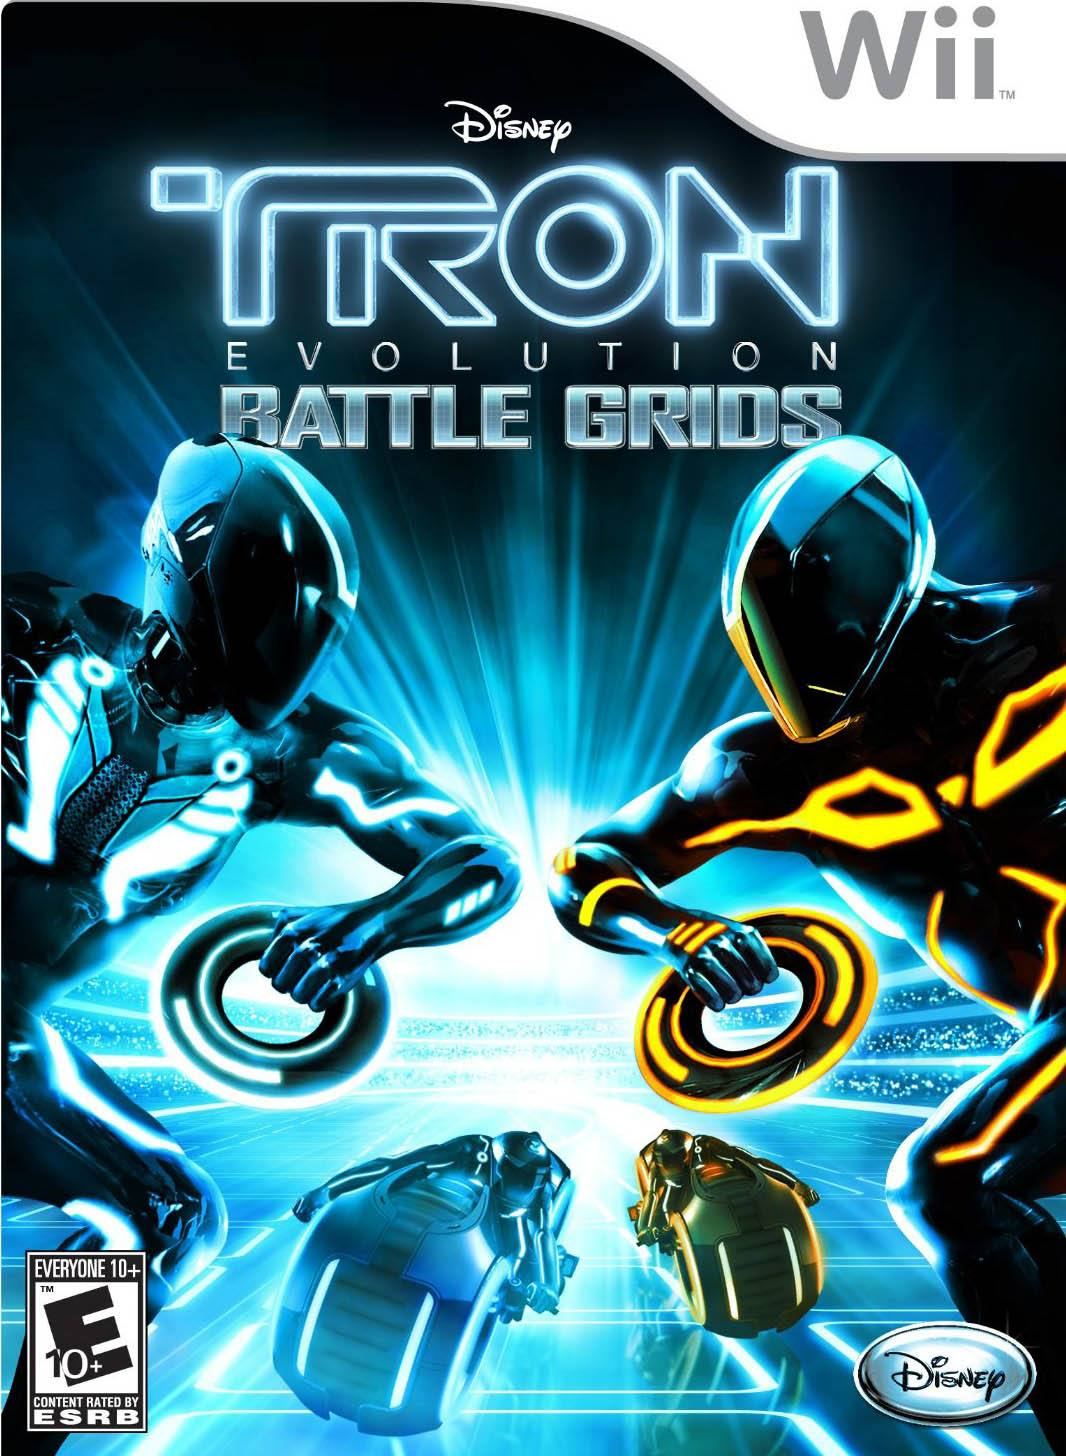 Tron 3 release date in Melbourne